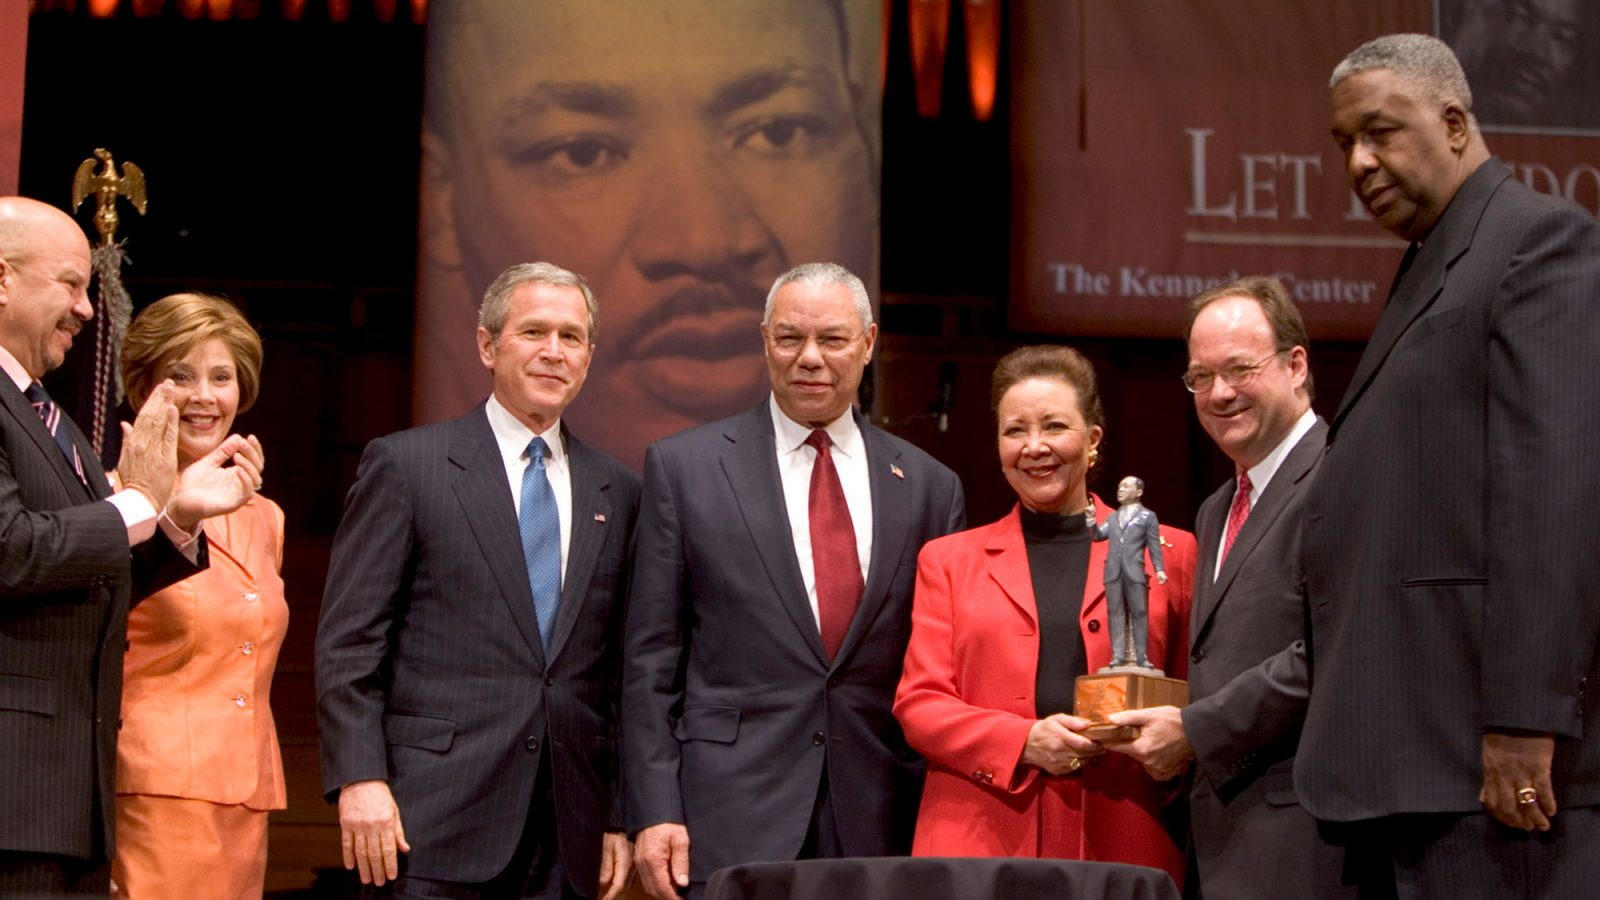 Tom Joyner, Laura Bush, George W. Bush and Colin Powell stand to the left of Alma Powell who is receiving an award from John J. DeGioia standing to her right with John Thompson Jr.